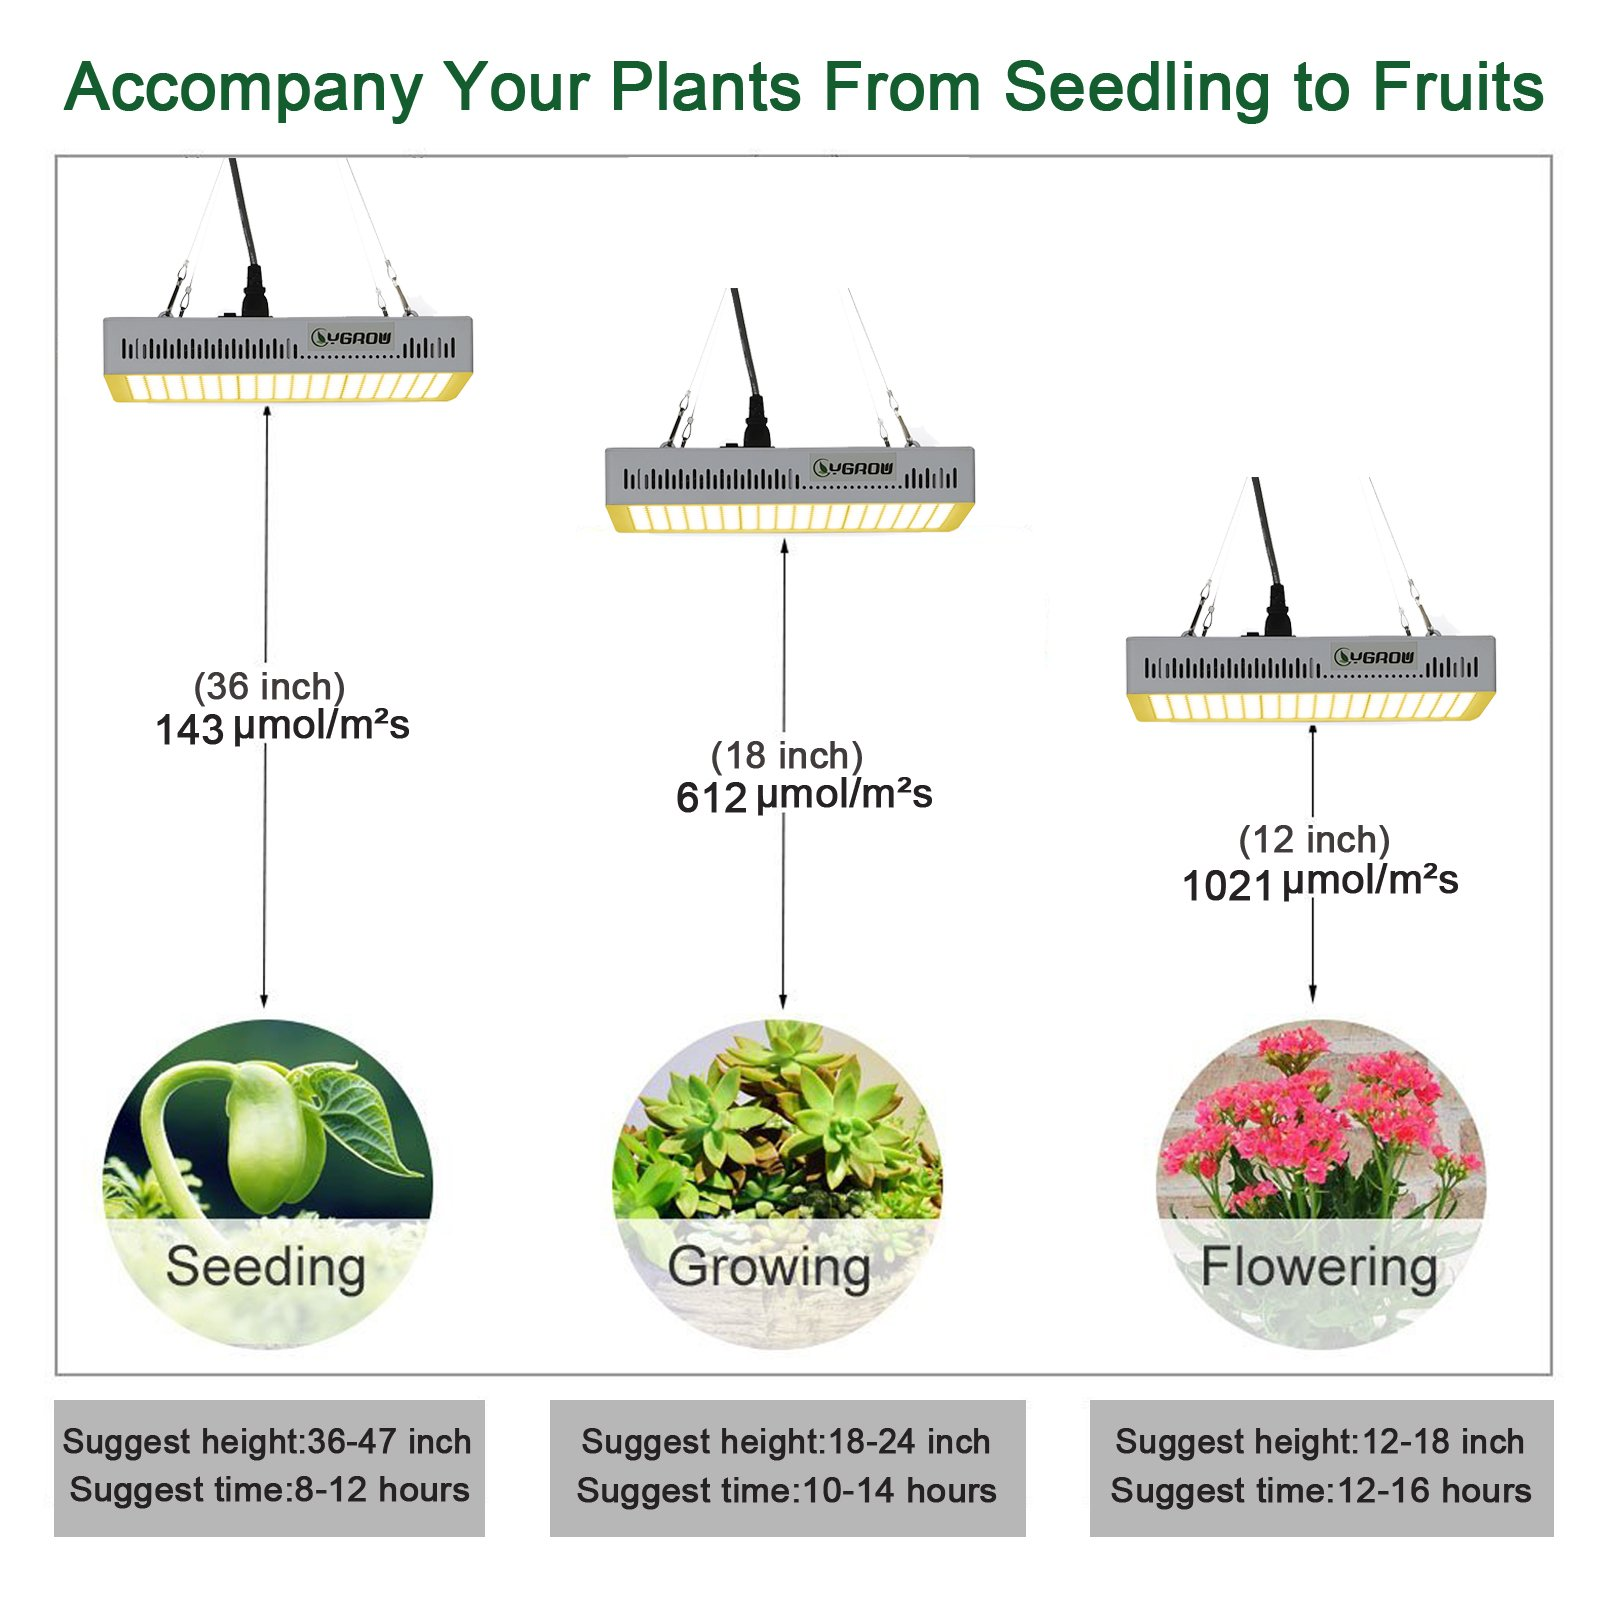 YGROW LED Grow Light Full Spectrum 600W,Reflector-Series Plant Grow Lights for Indoor Plants Veg and Flower with Heatproof Casing 3500K by YGROW (Image #5)